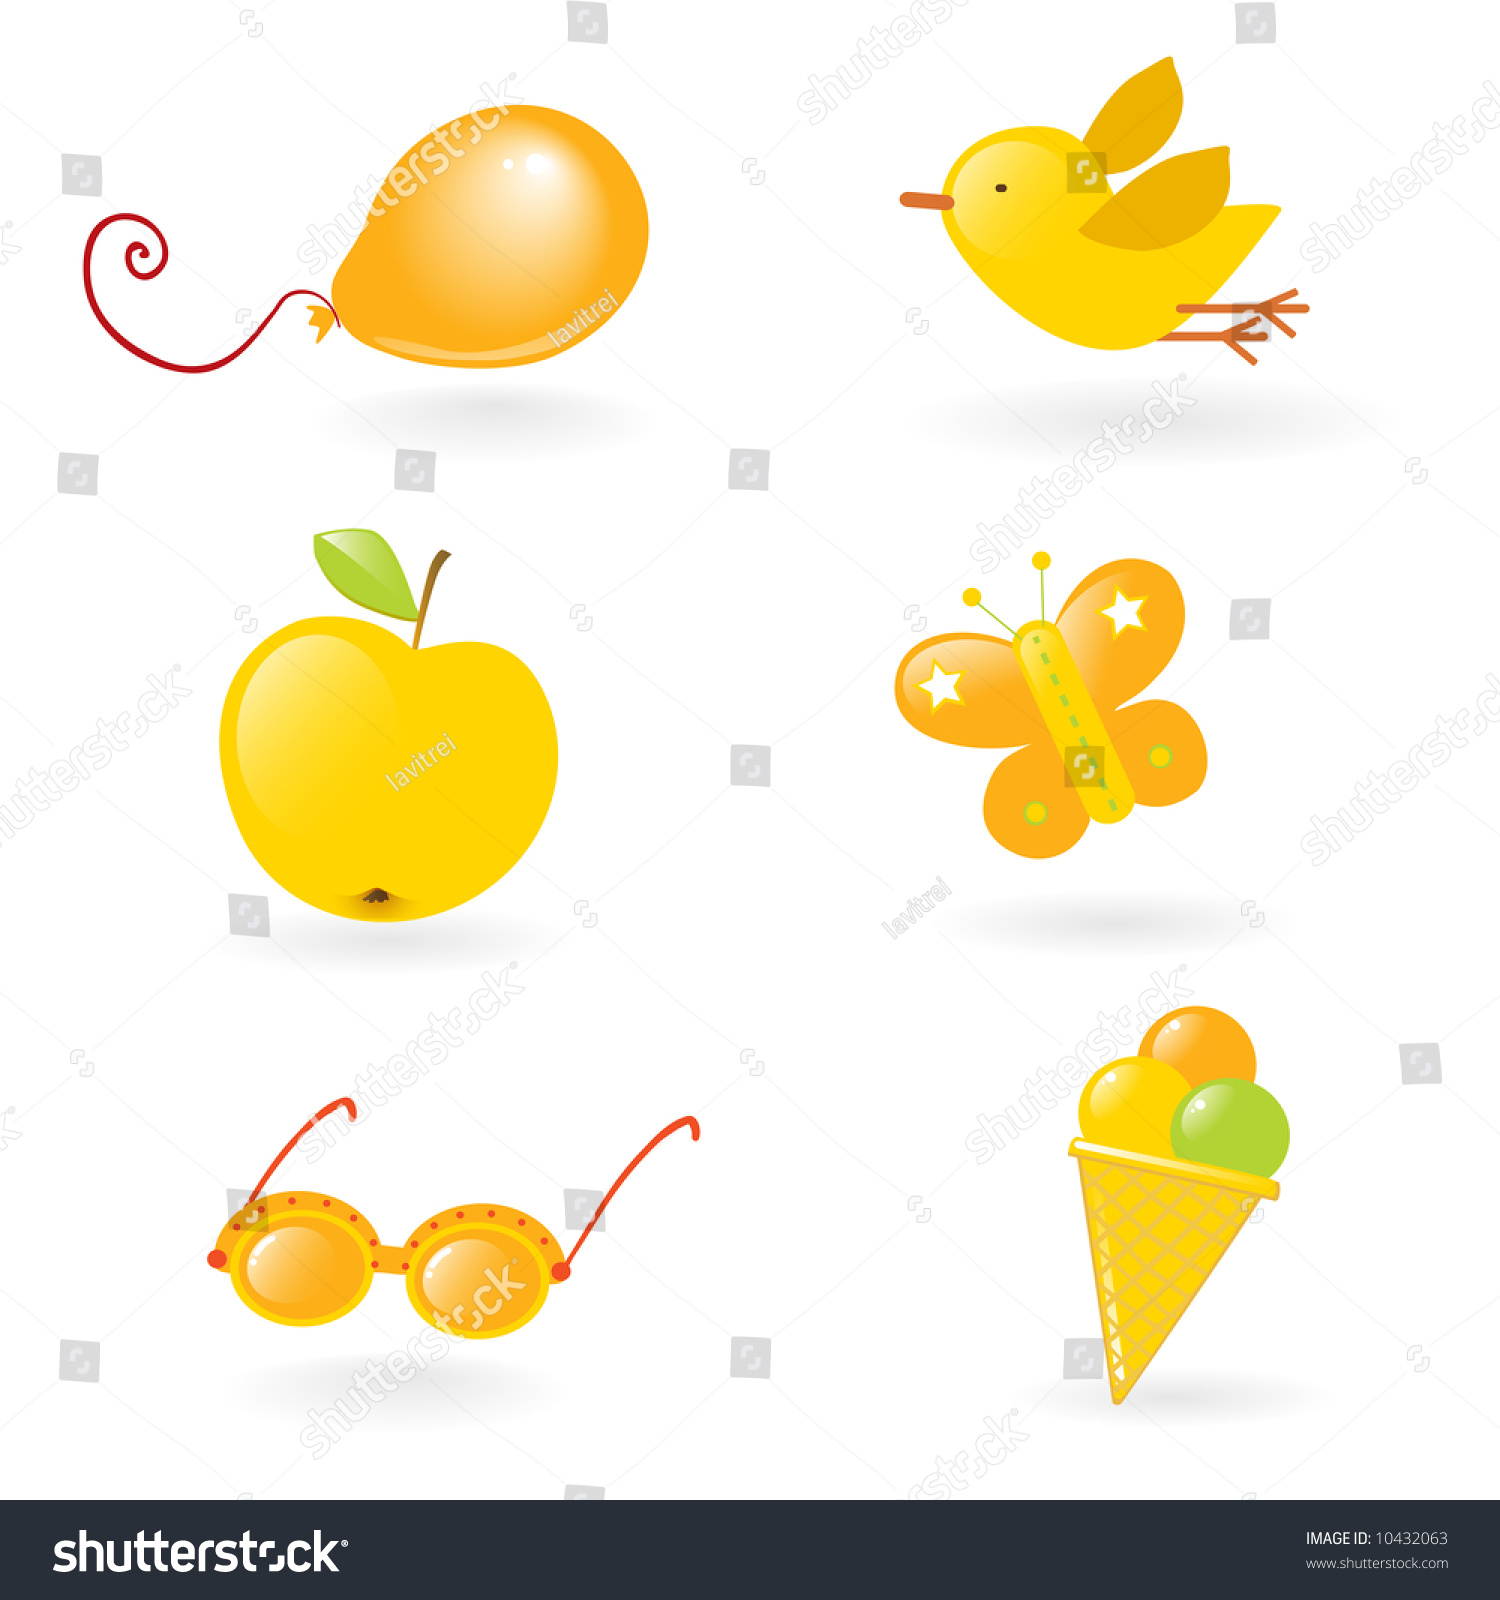 Vector Clipart Different Yellow Colored Objects Stock